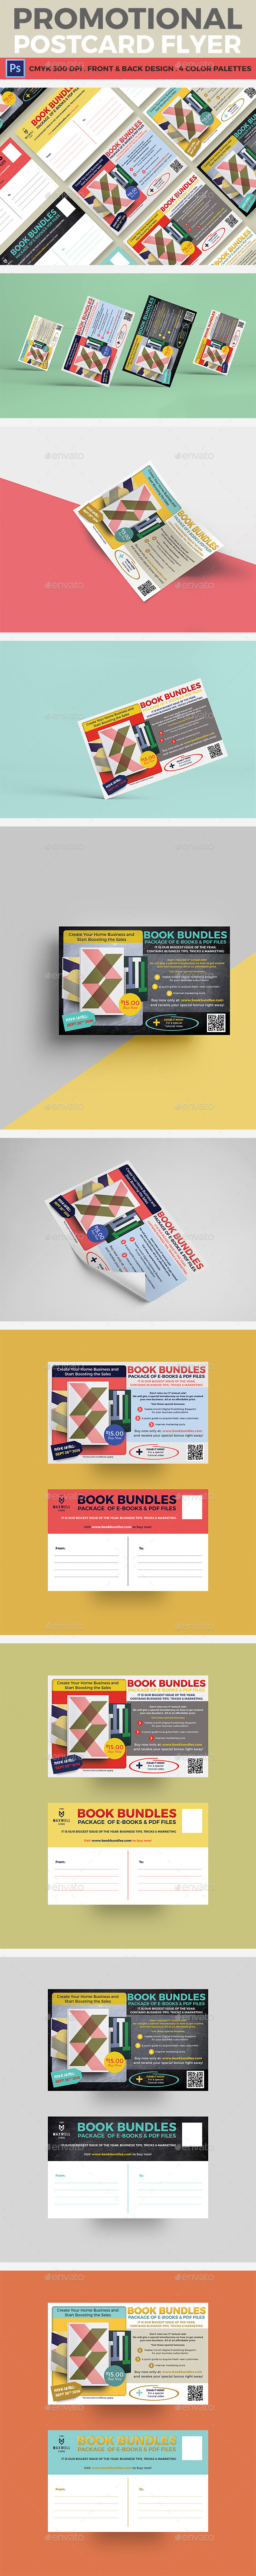 Promotional Postcard Flyer - Flyers Print Templates